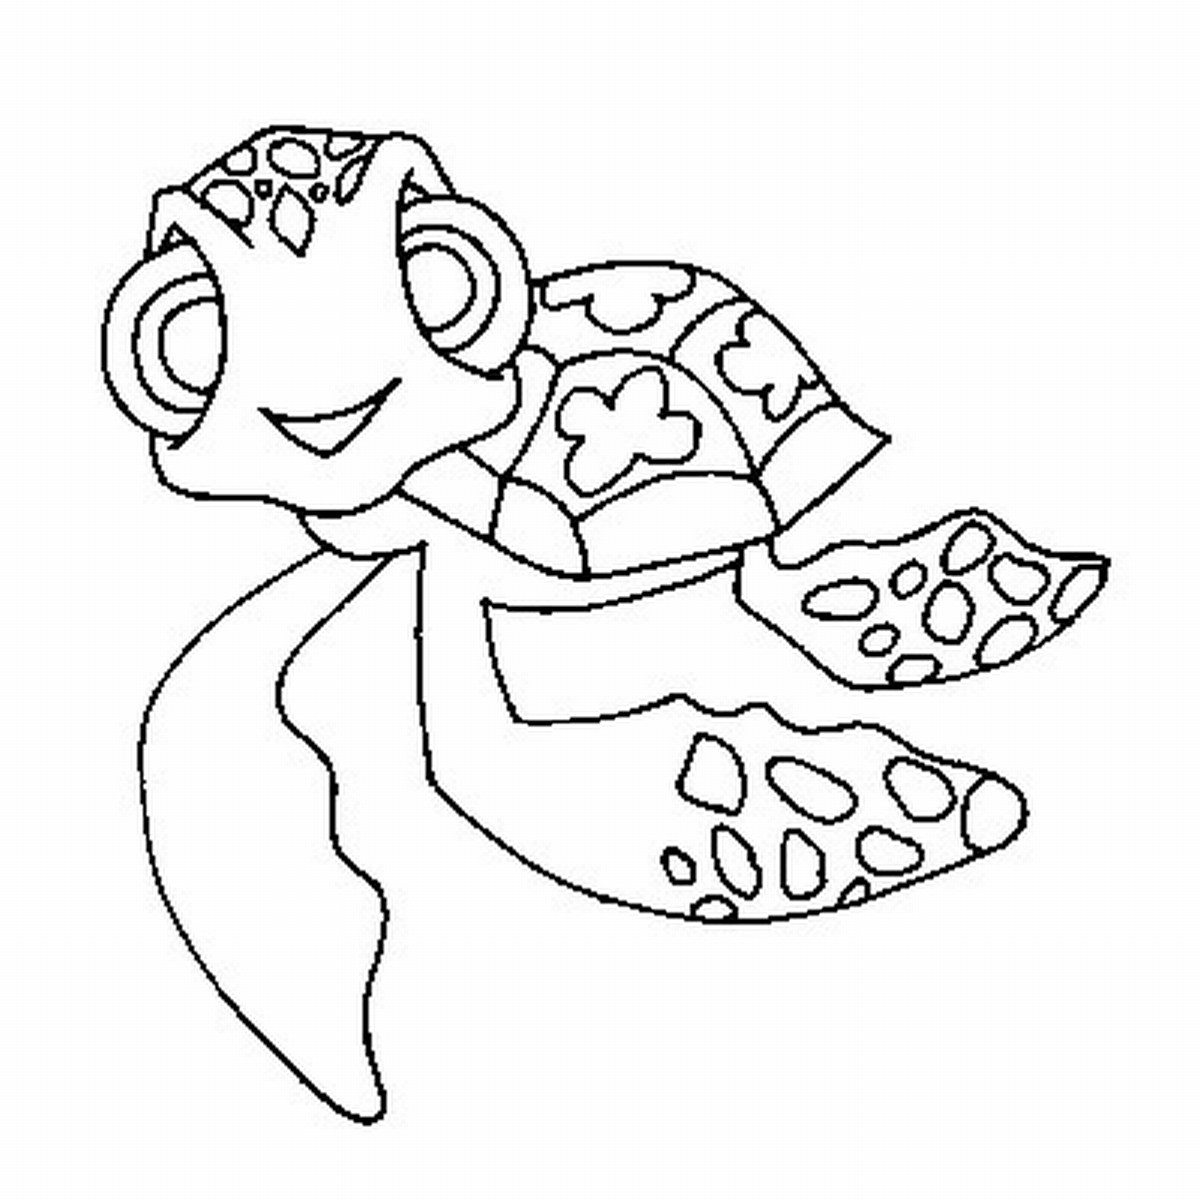 1200x1200 Simple Decoration Sea Turtle Coloring Pages Printable For Kids